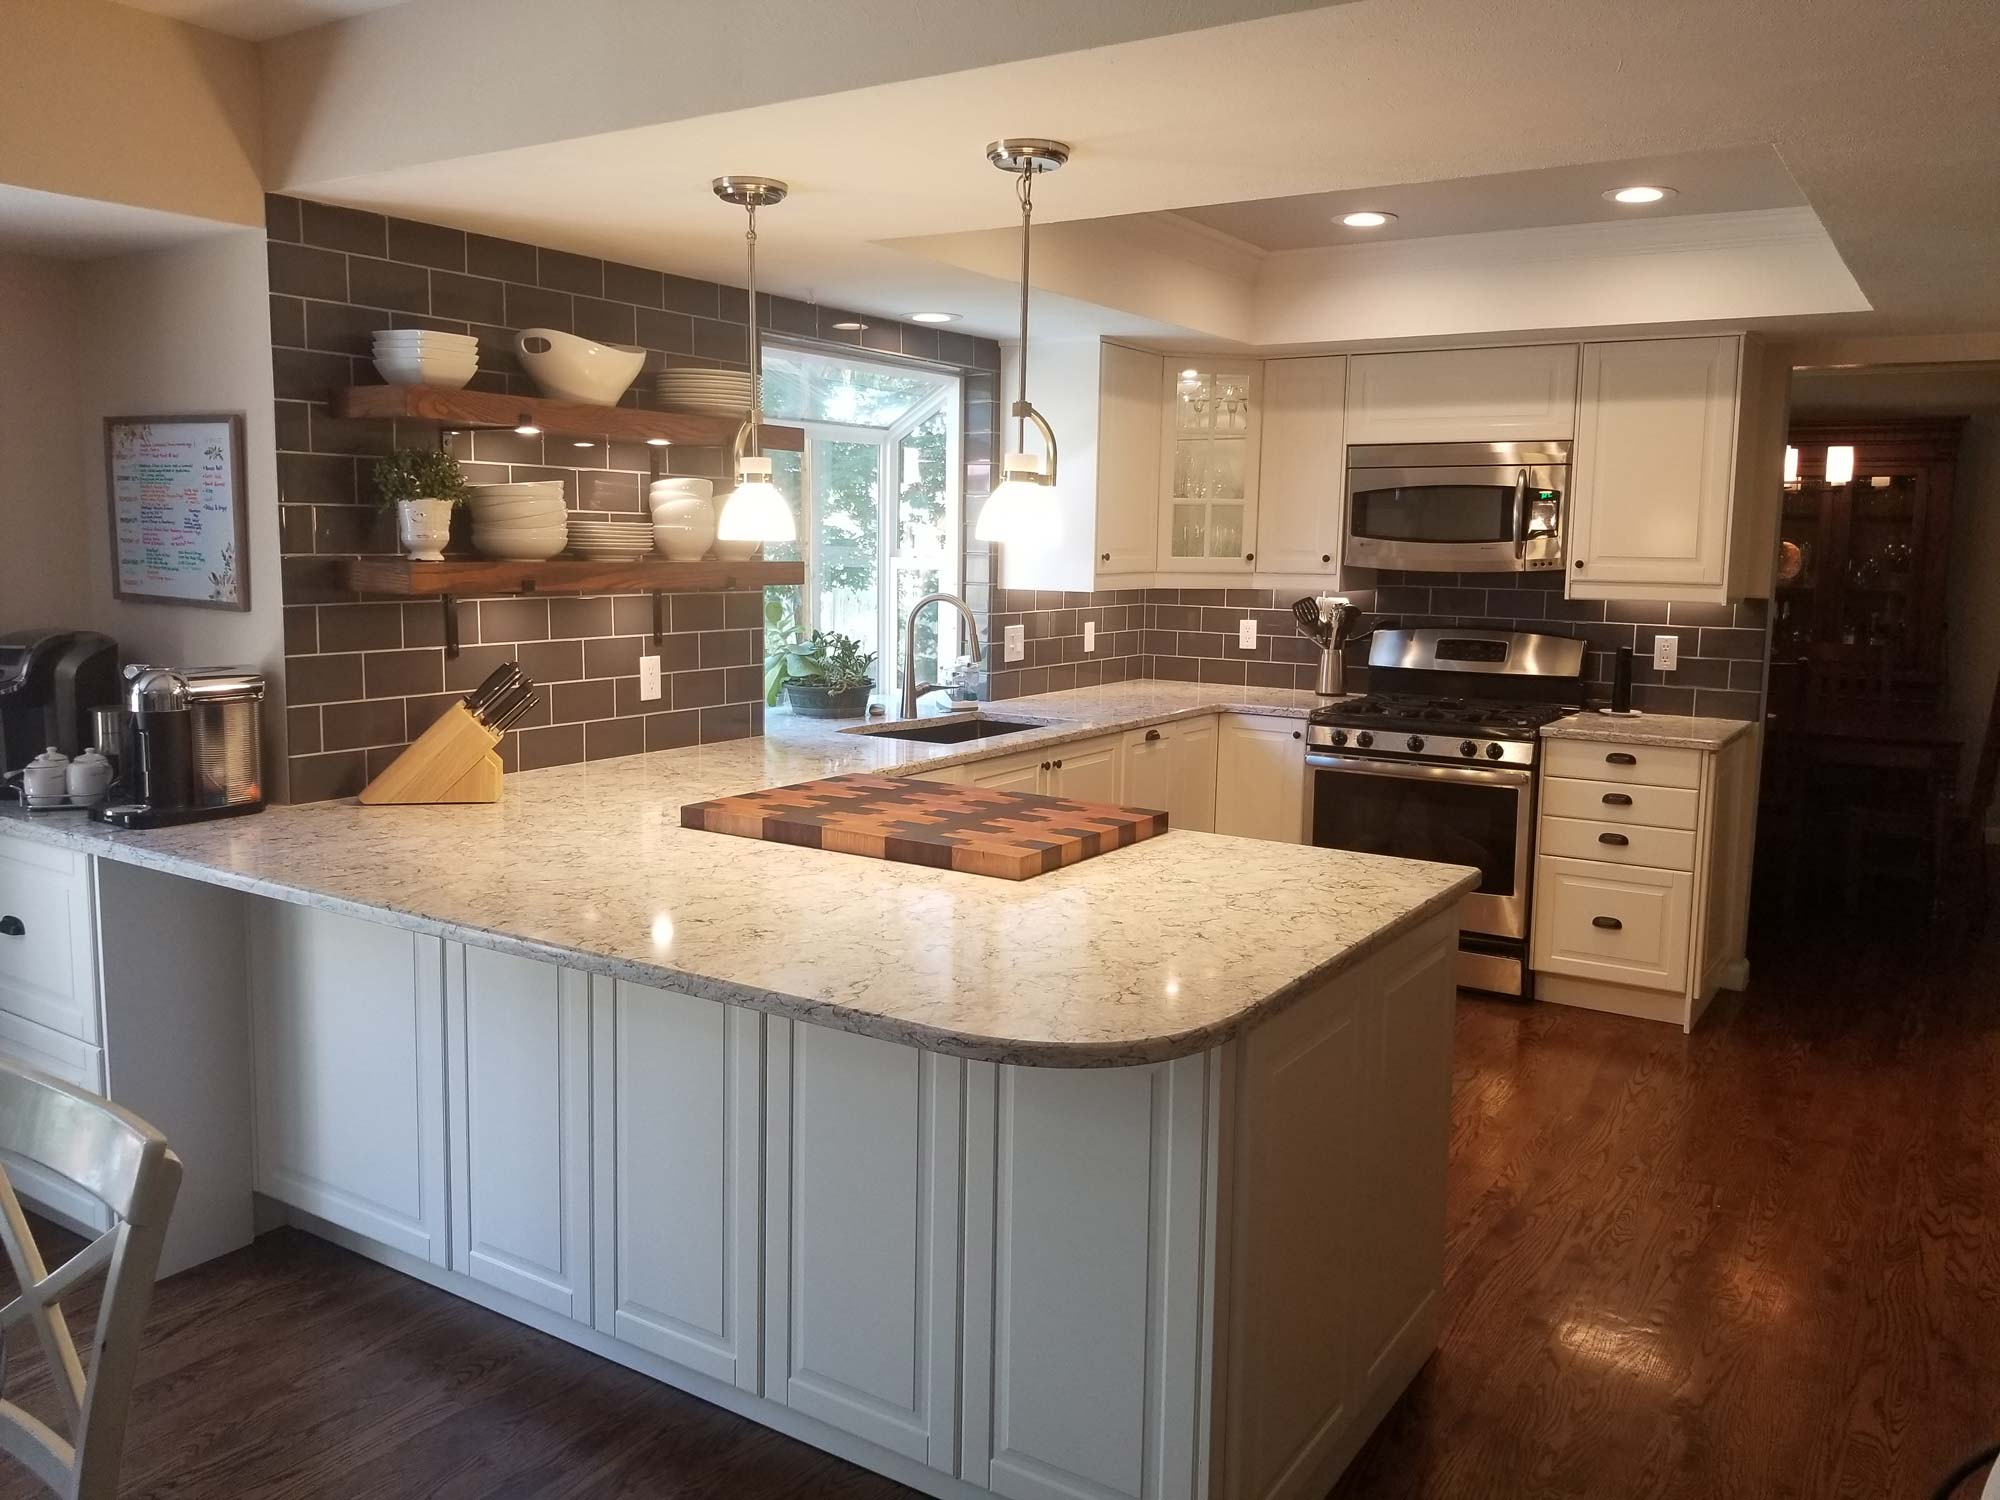 Ikd inspired kitchen design we are ikea kitchen design for Kitchen design specialists colorado springs